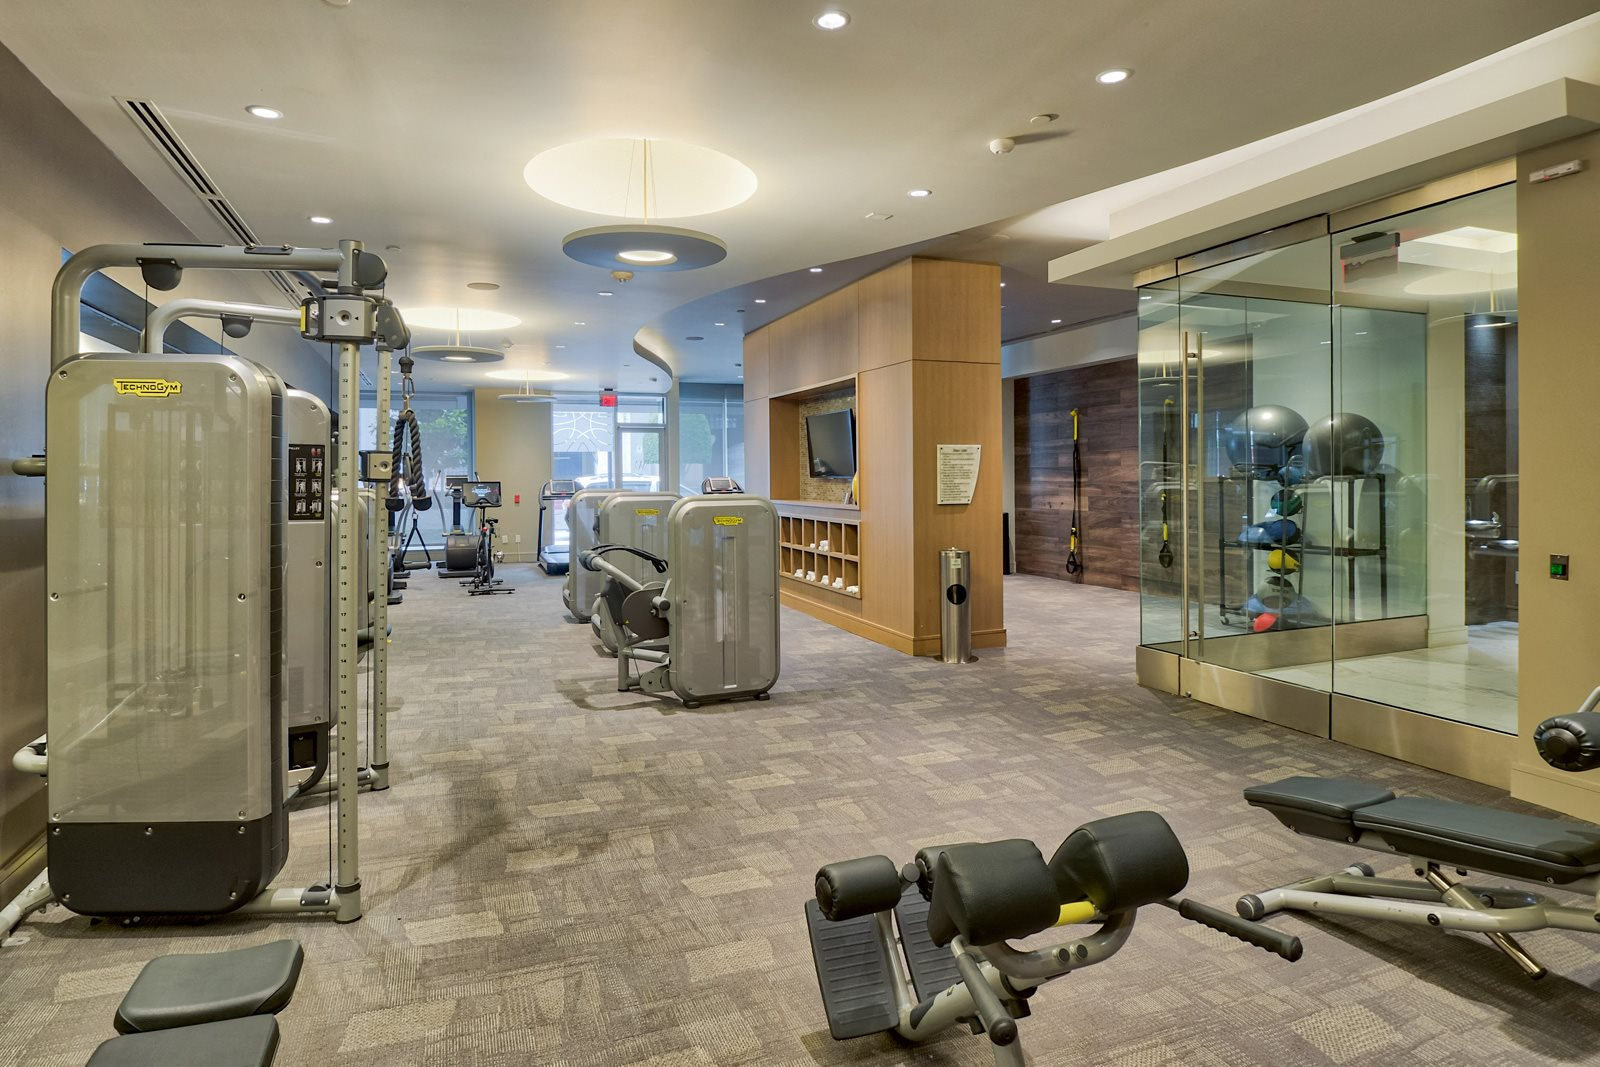 24/7 Fitness Center at Olympic by Windsor, Los Angeles, CA